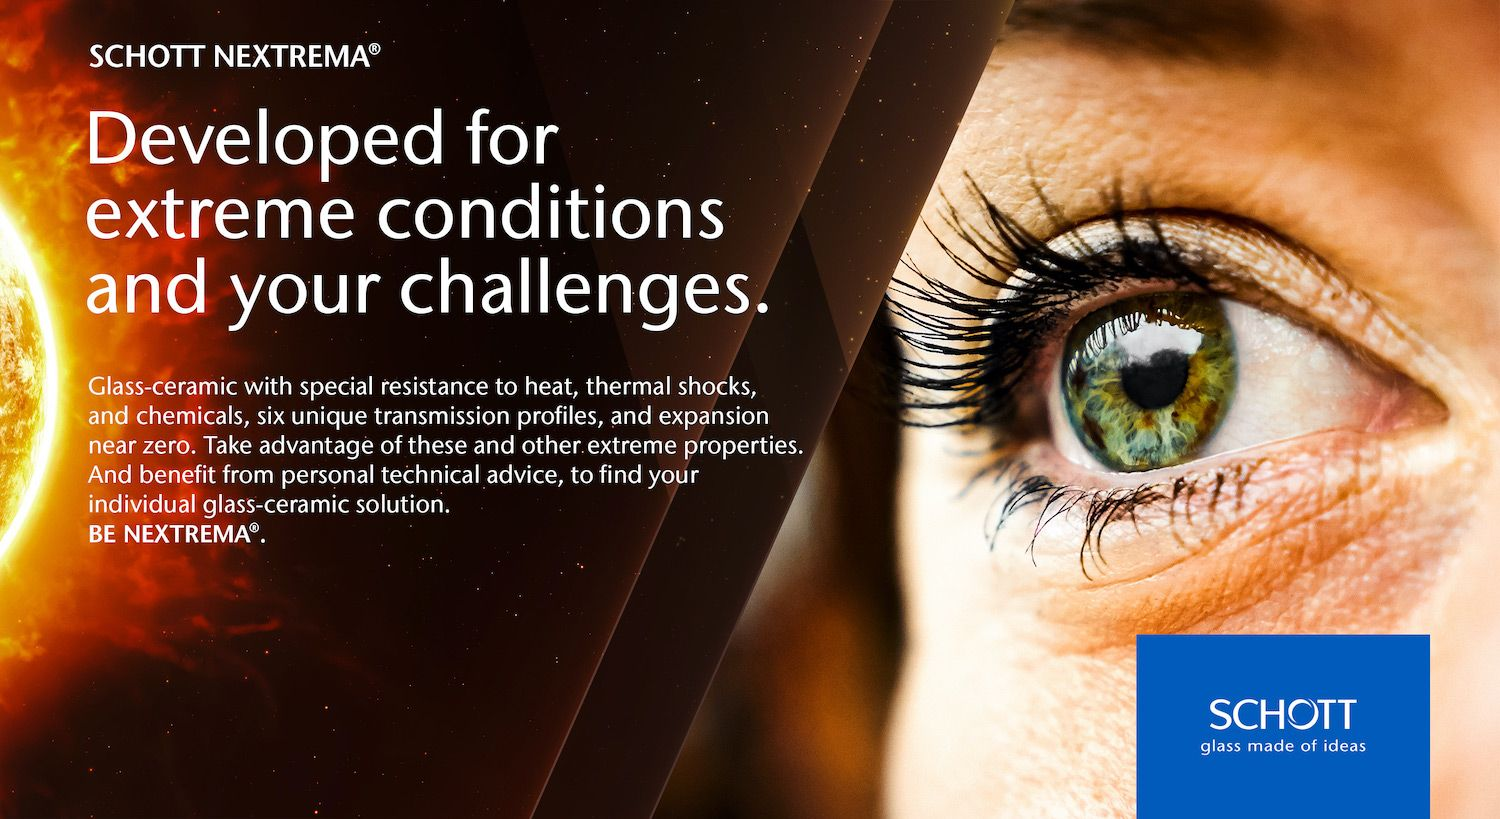 NEXTREMA - developed for extreme conditions